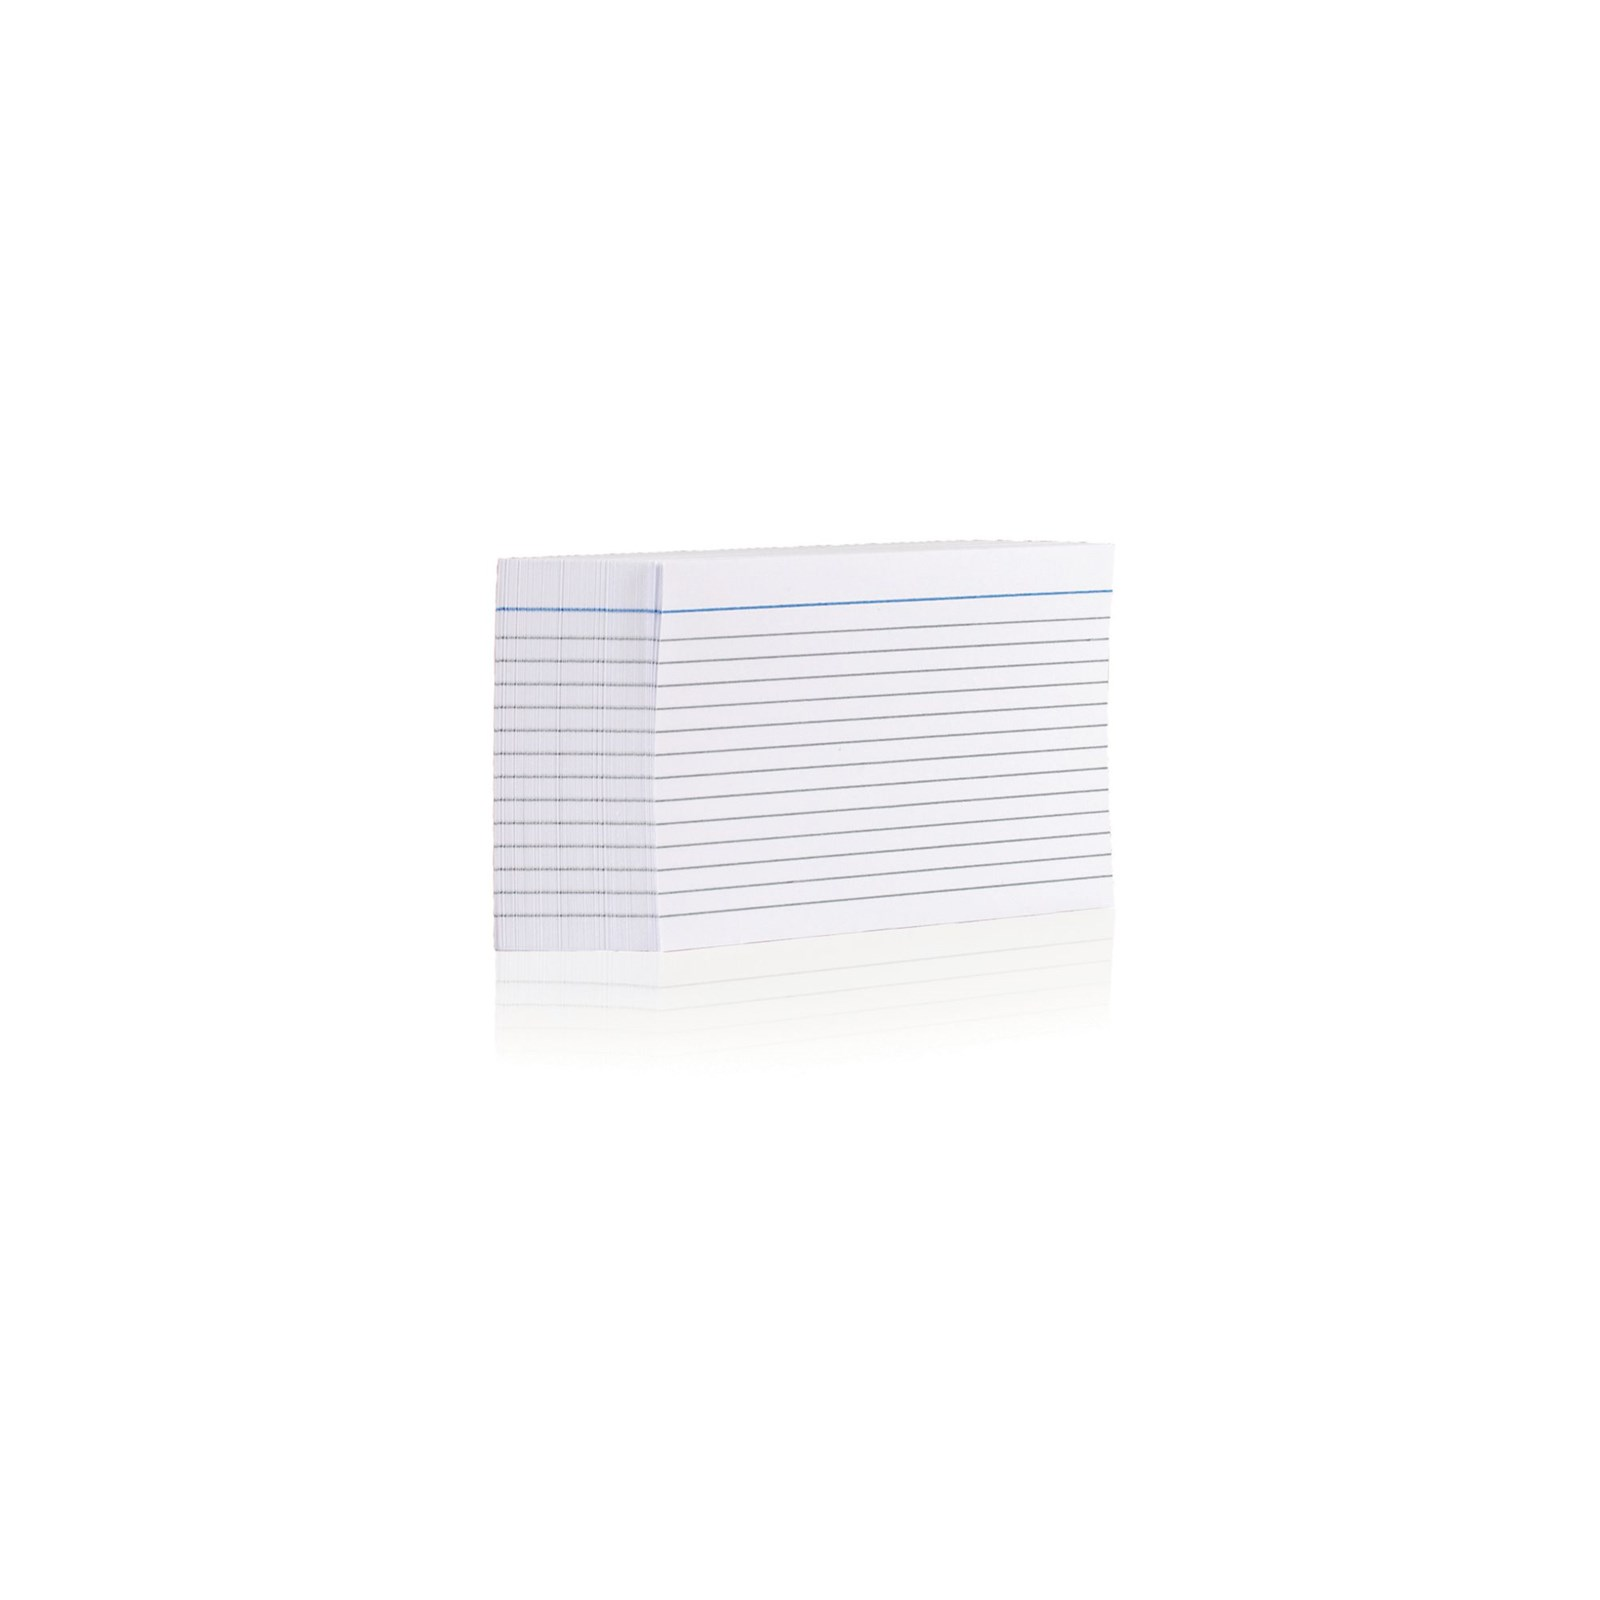 Record Card 152 x 102mm White - Pack of 100